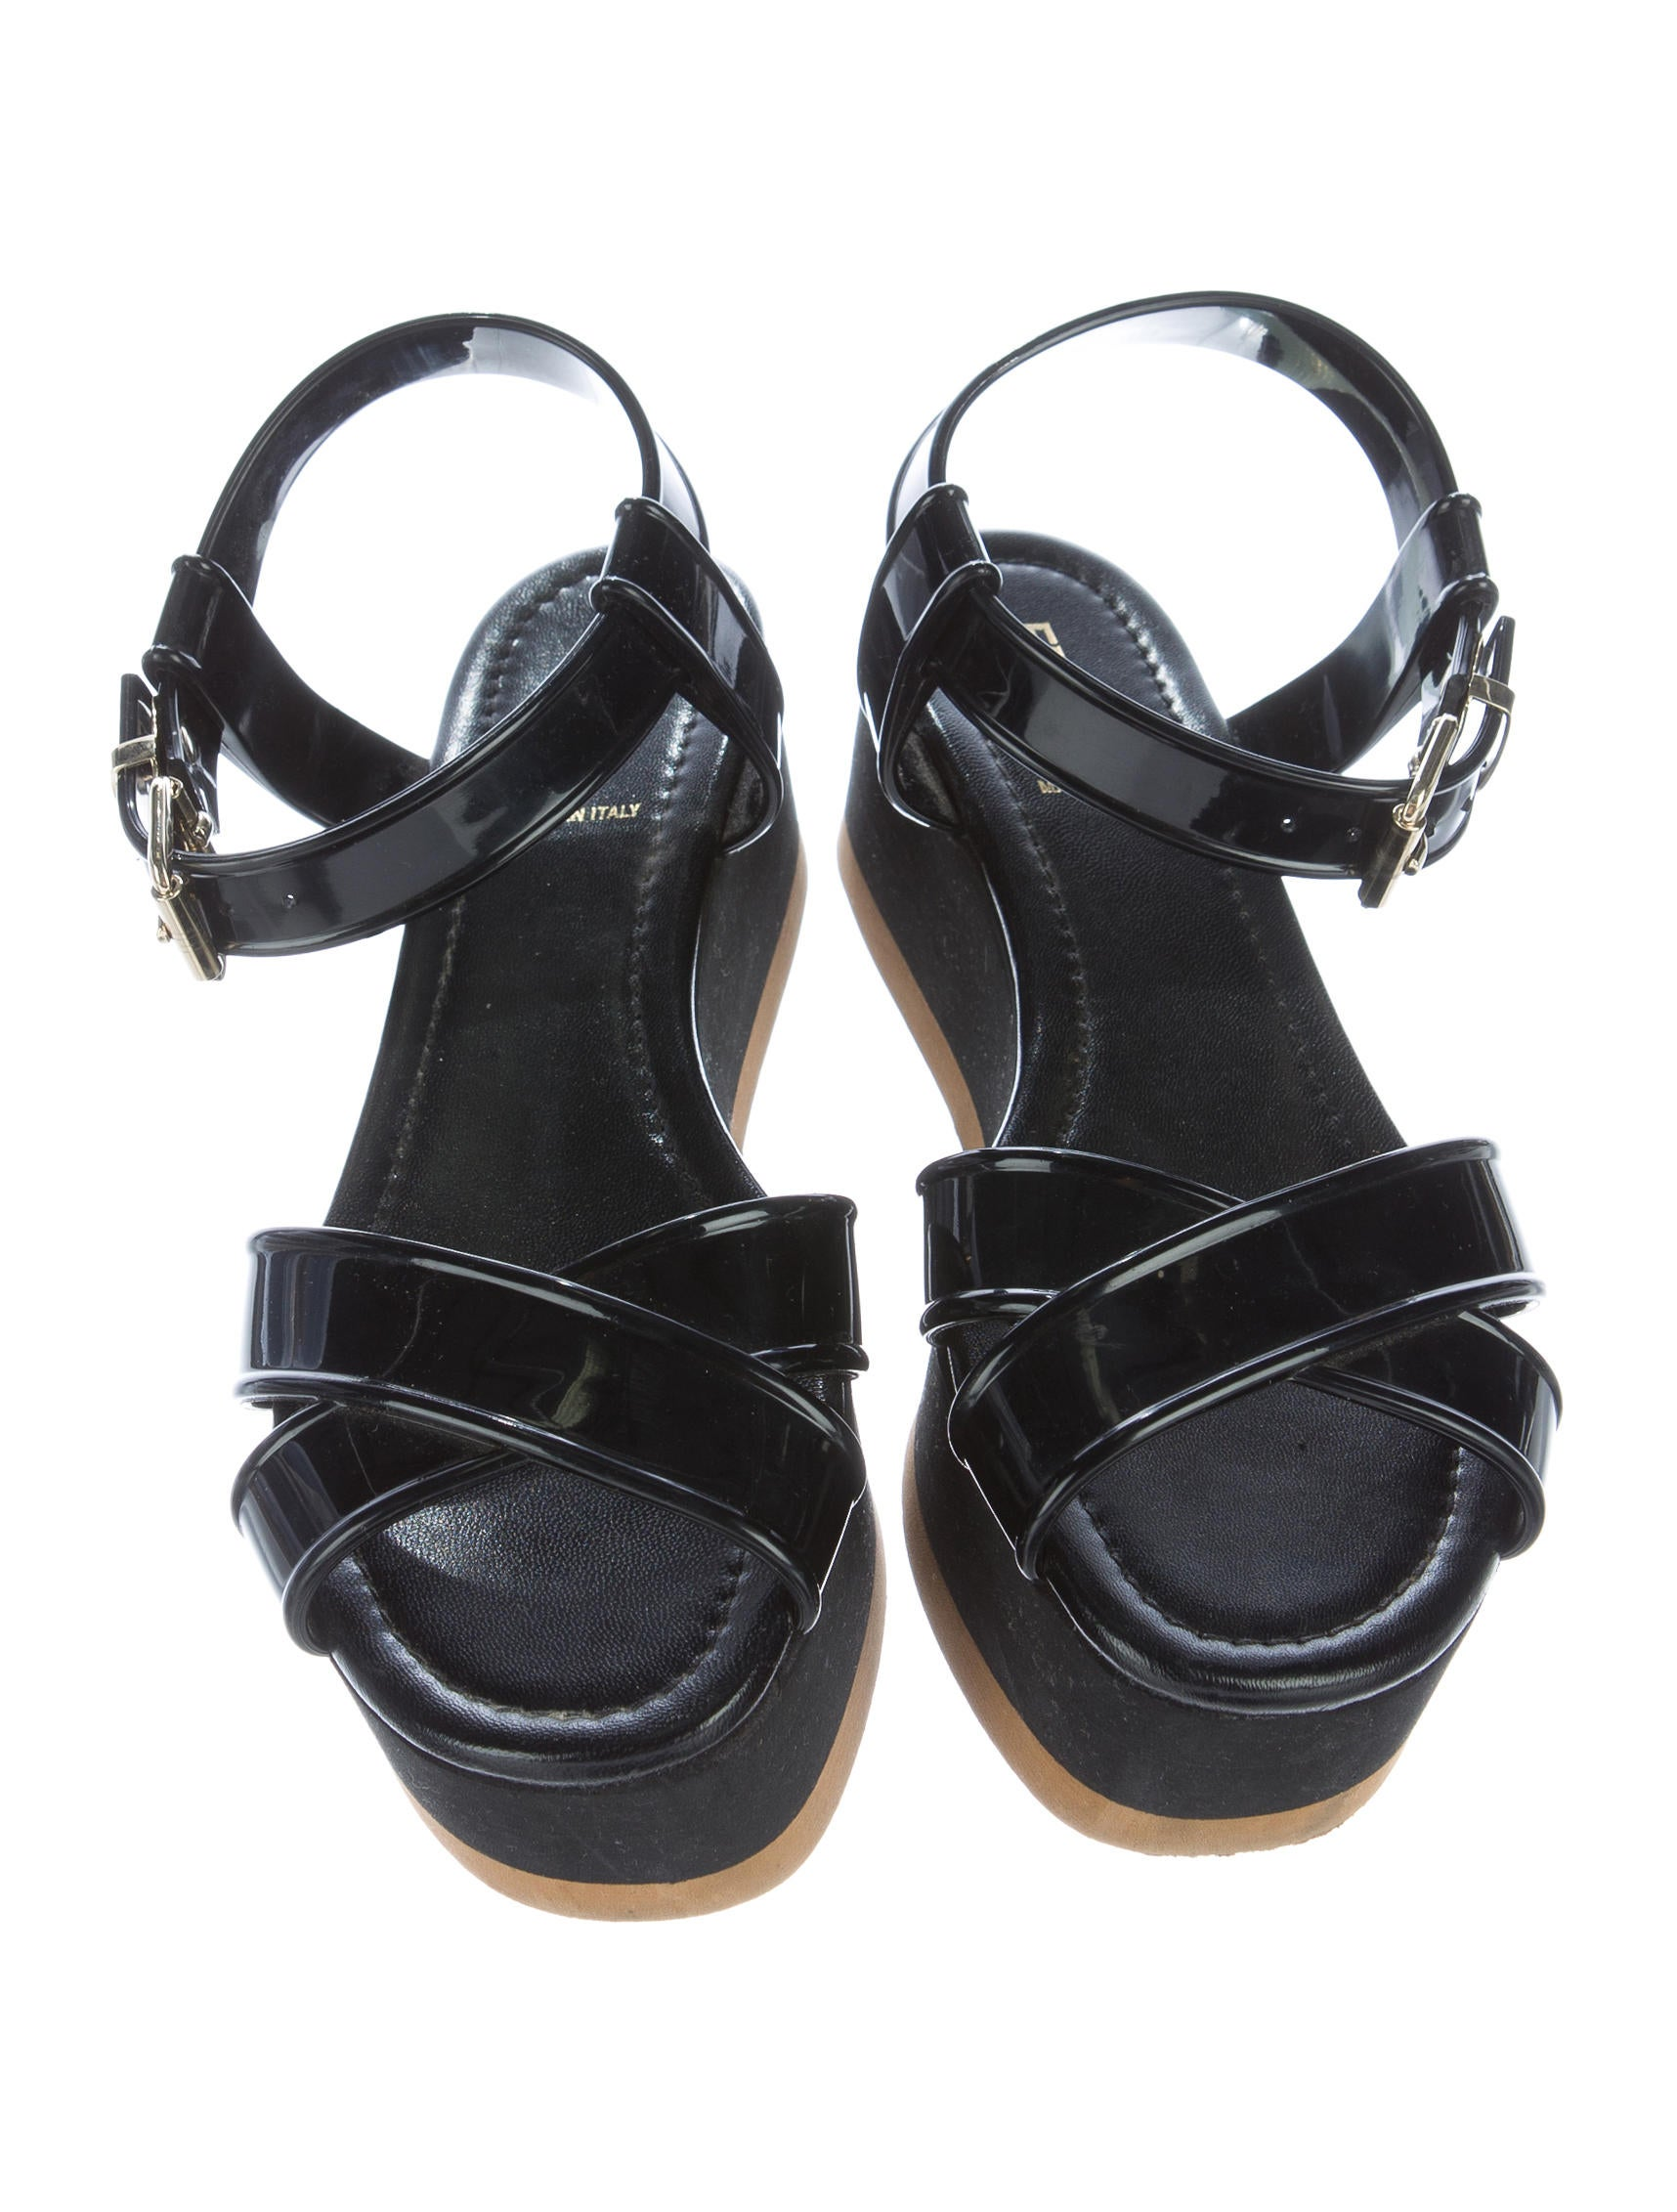 Shop Rainbow® Sandals comfortable and classy sandals in leather, rubber & hemp. They come in stylish strappy sandals and traditional between the toe sandals.